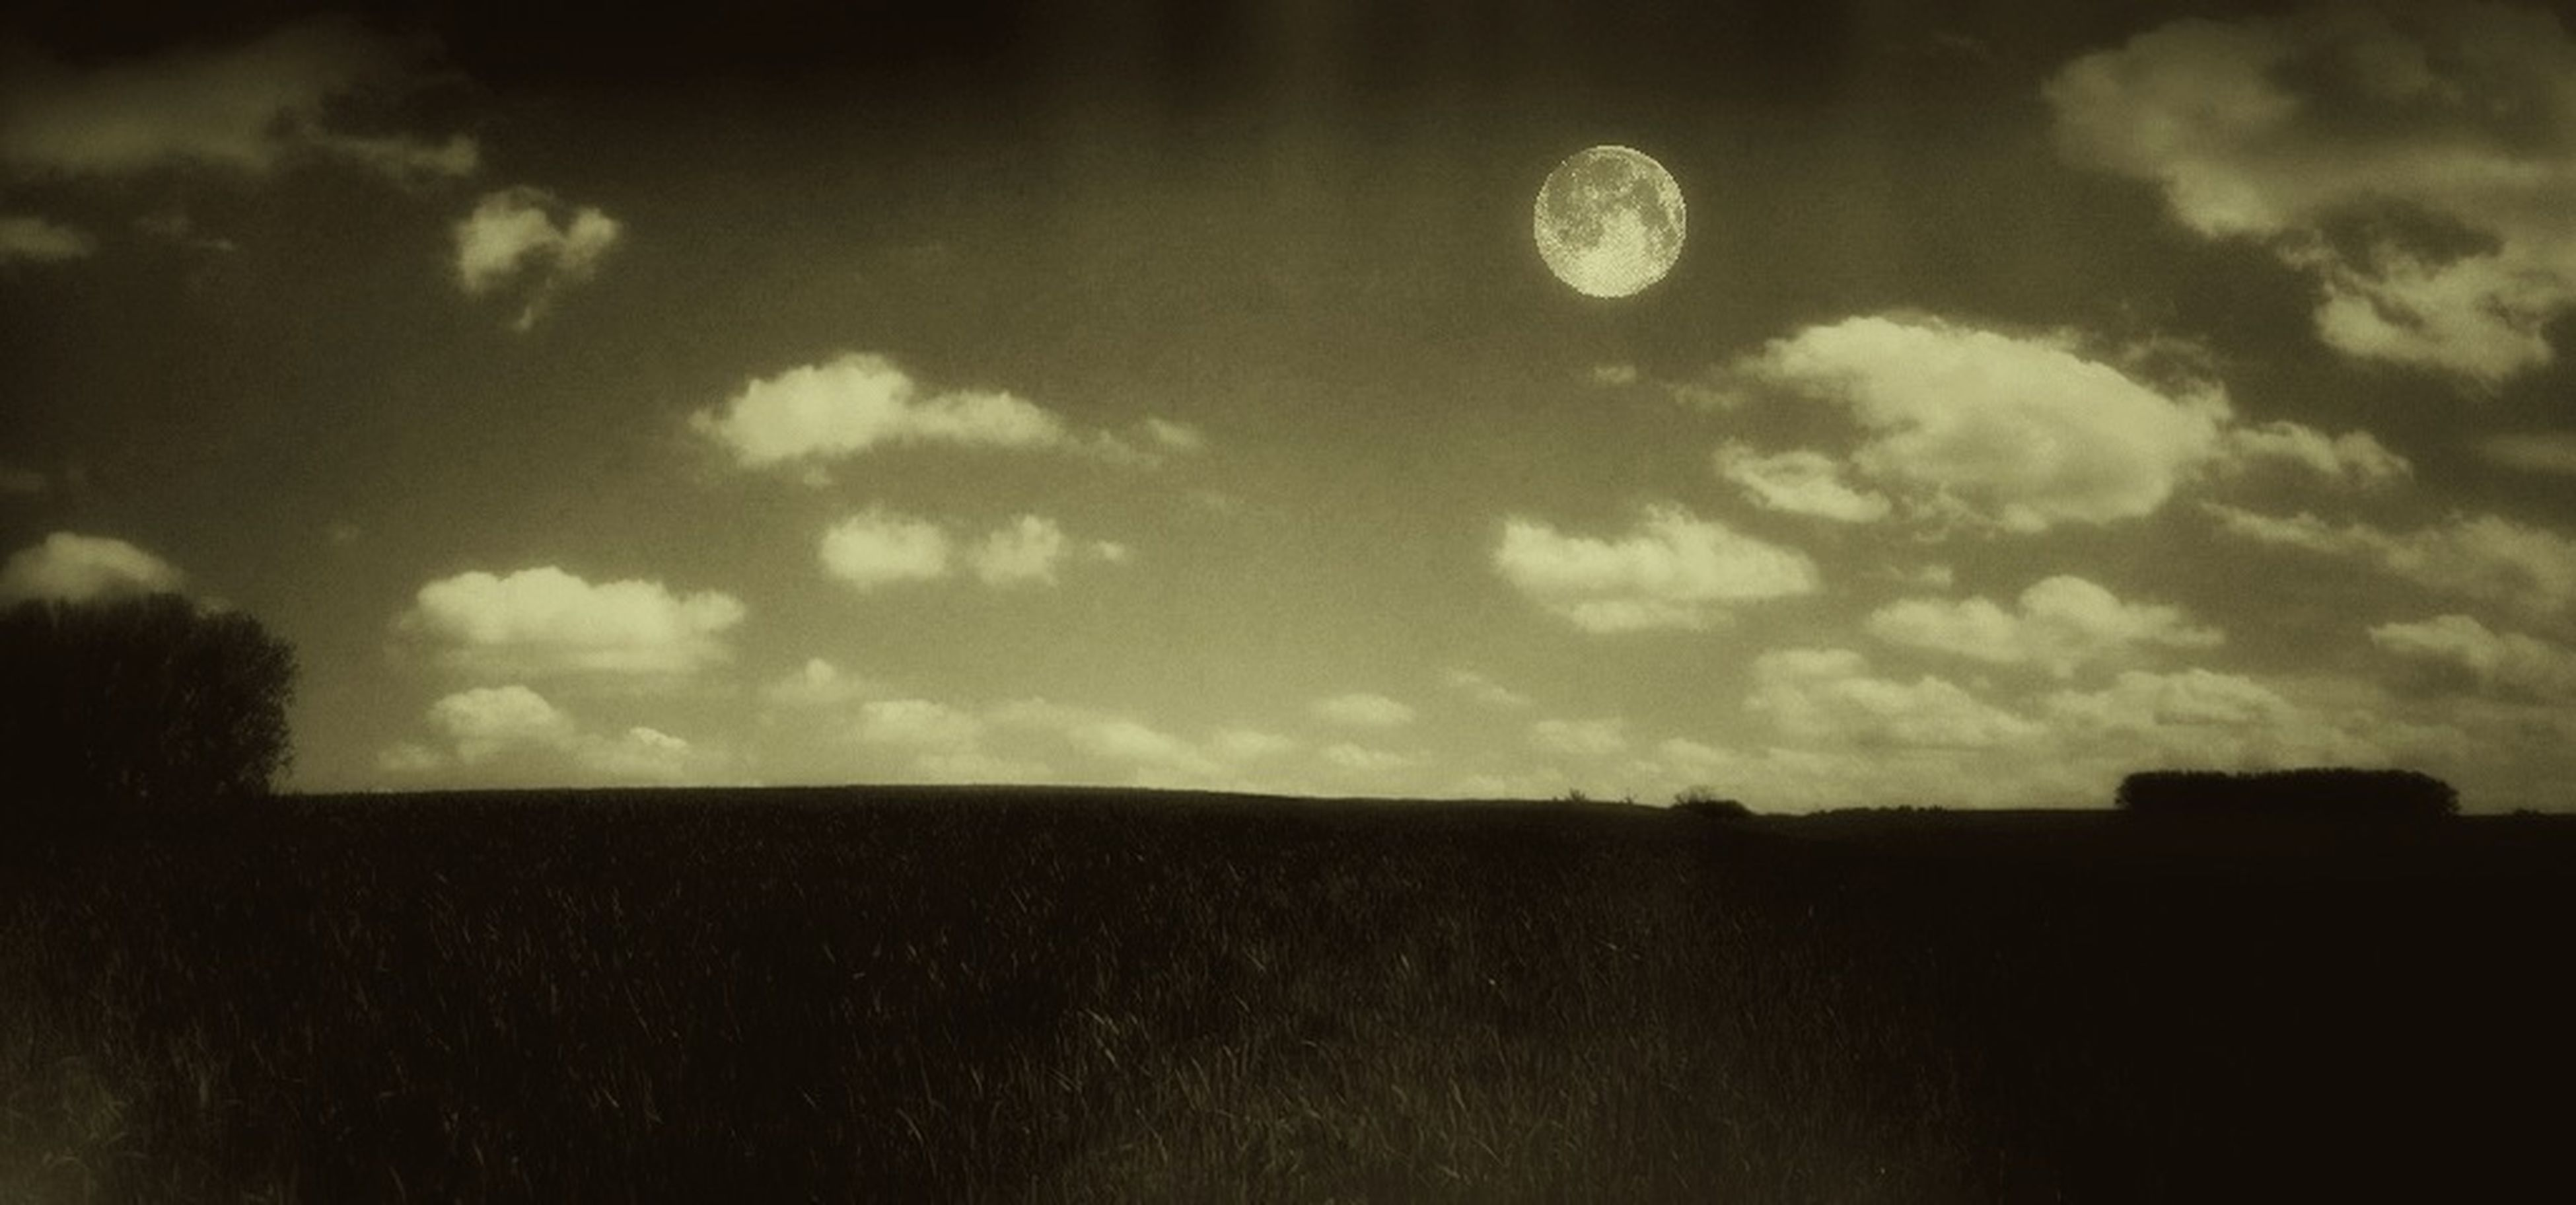 sky, landscape, tranquil scene, silhouette, tranquility, cloud - sky, scenics, field, beauty in nature, nature, cloud, moon, cloudy, dusk, sunset, dark, outdoors, horizon over land, rural scene, idyllic